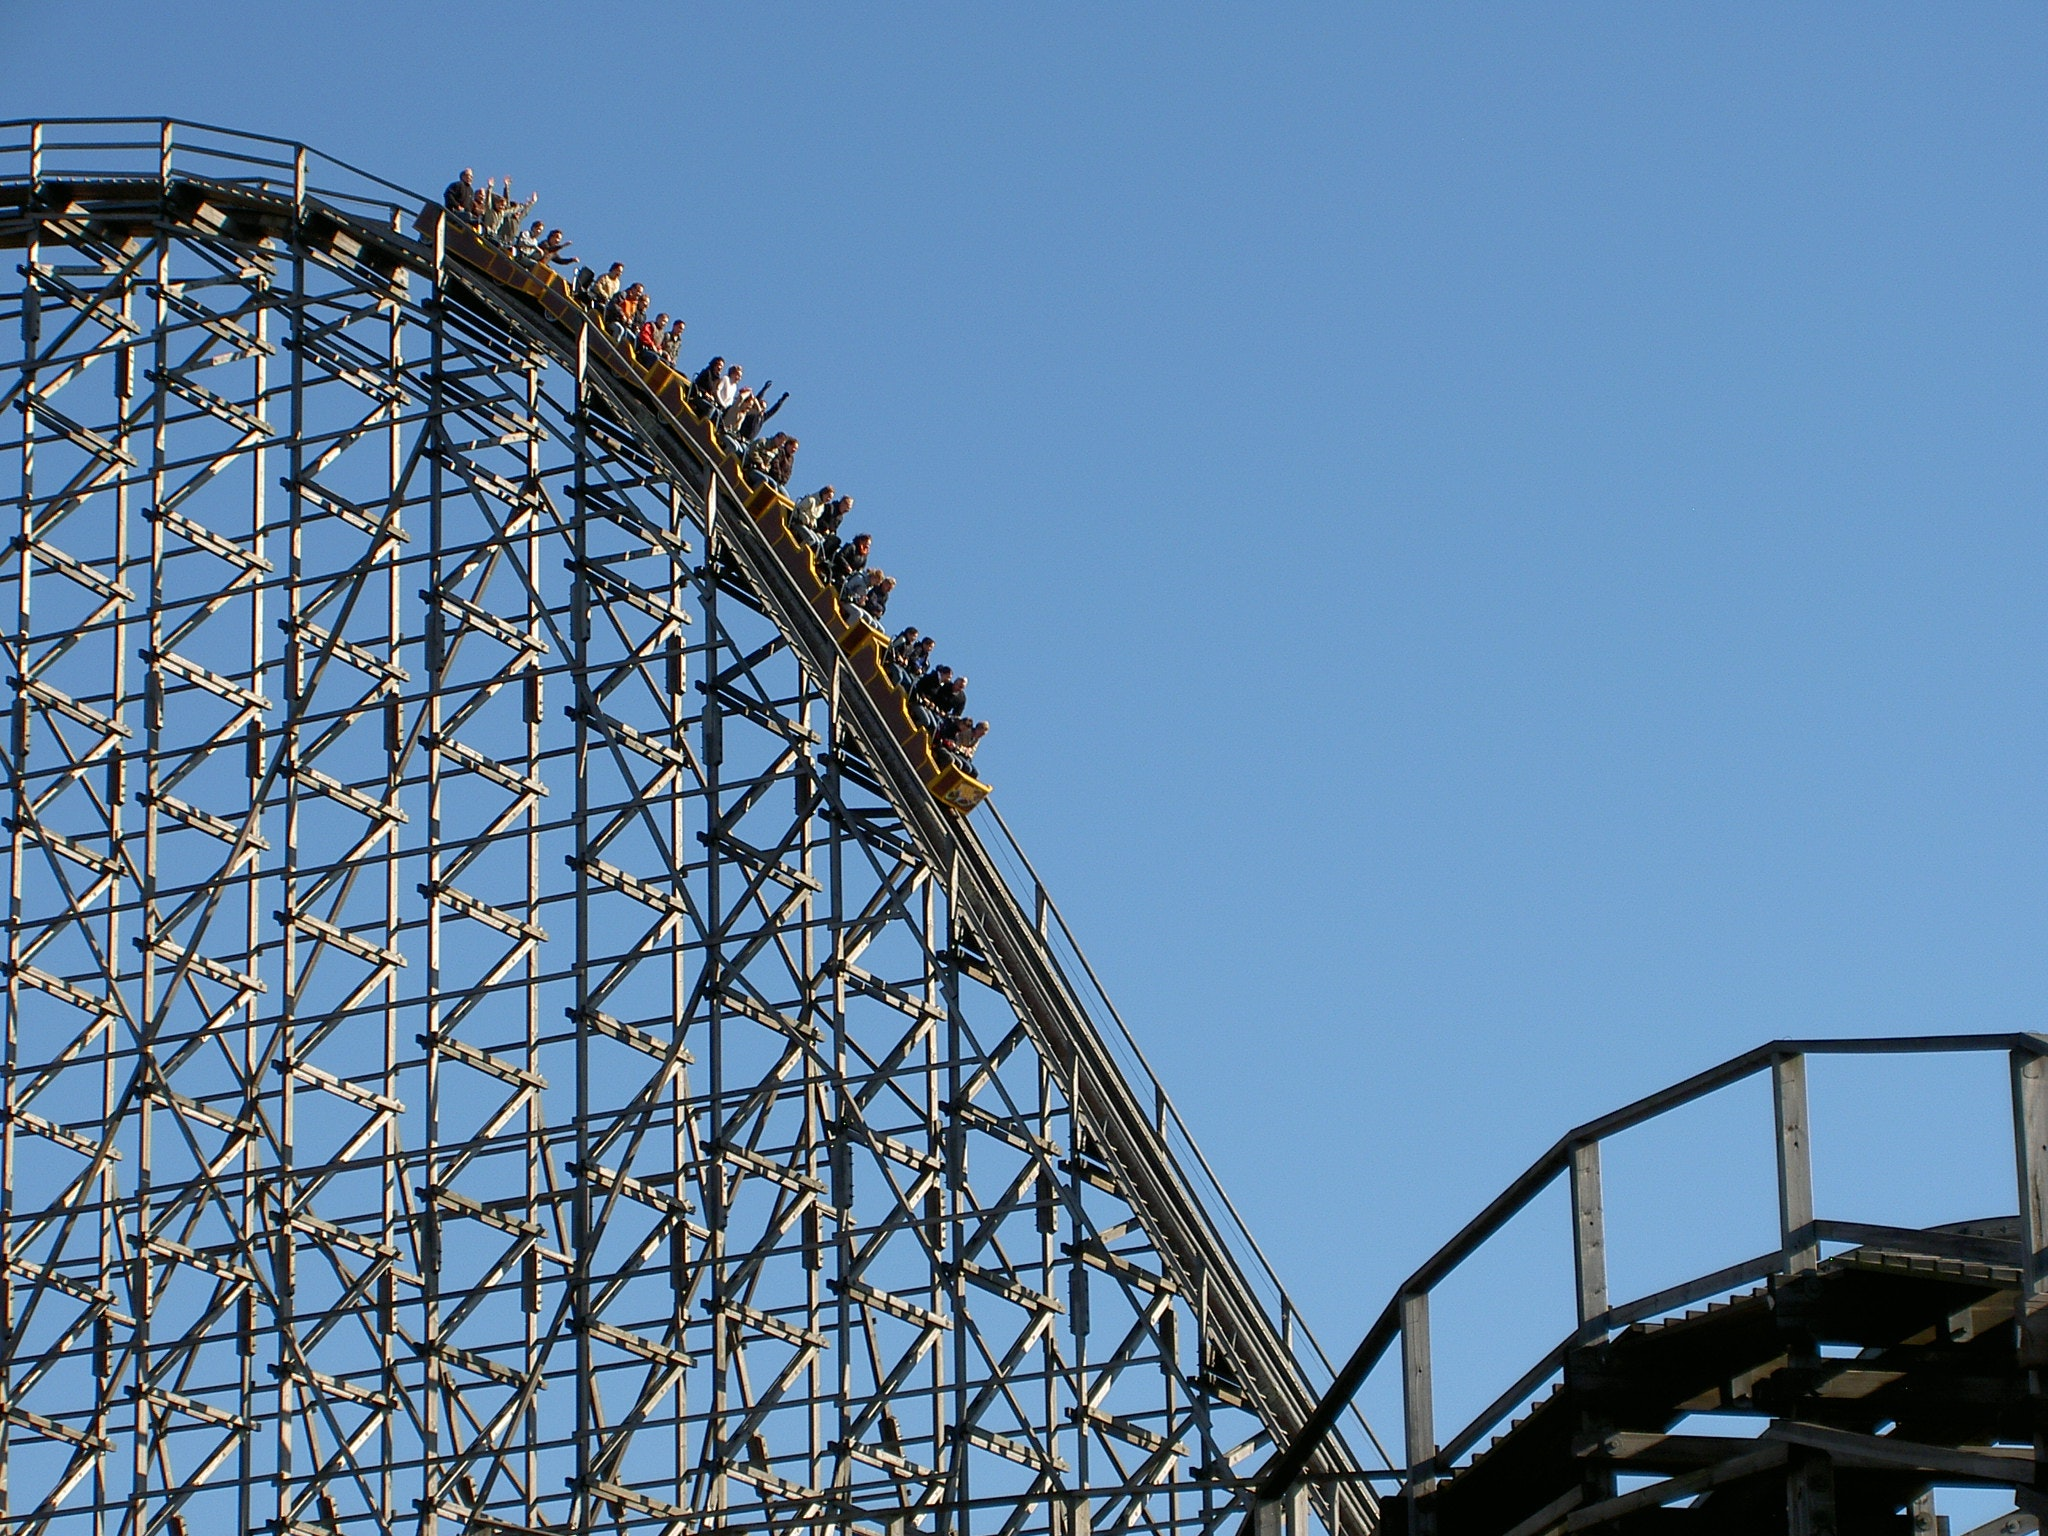 Roller Coaster Ride, Ride, Vacation, Tower, Tourism, HQ Photo